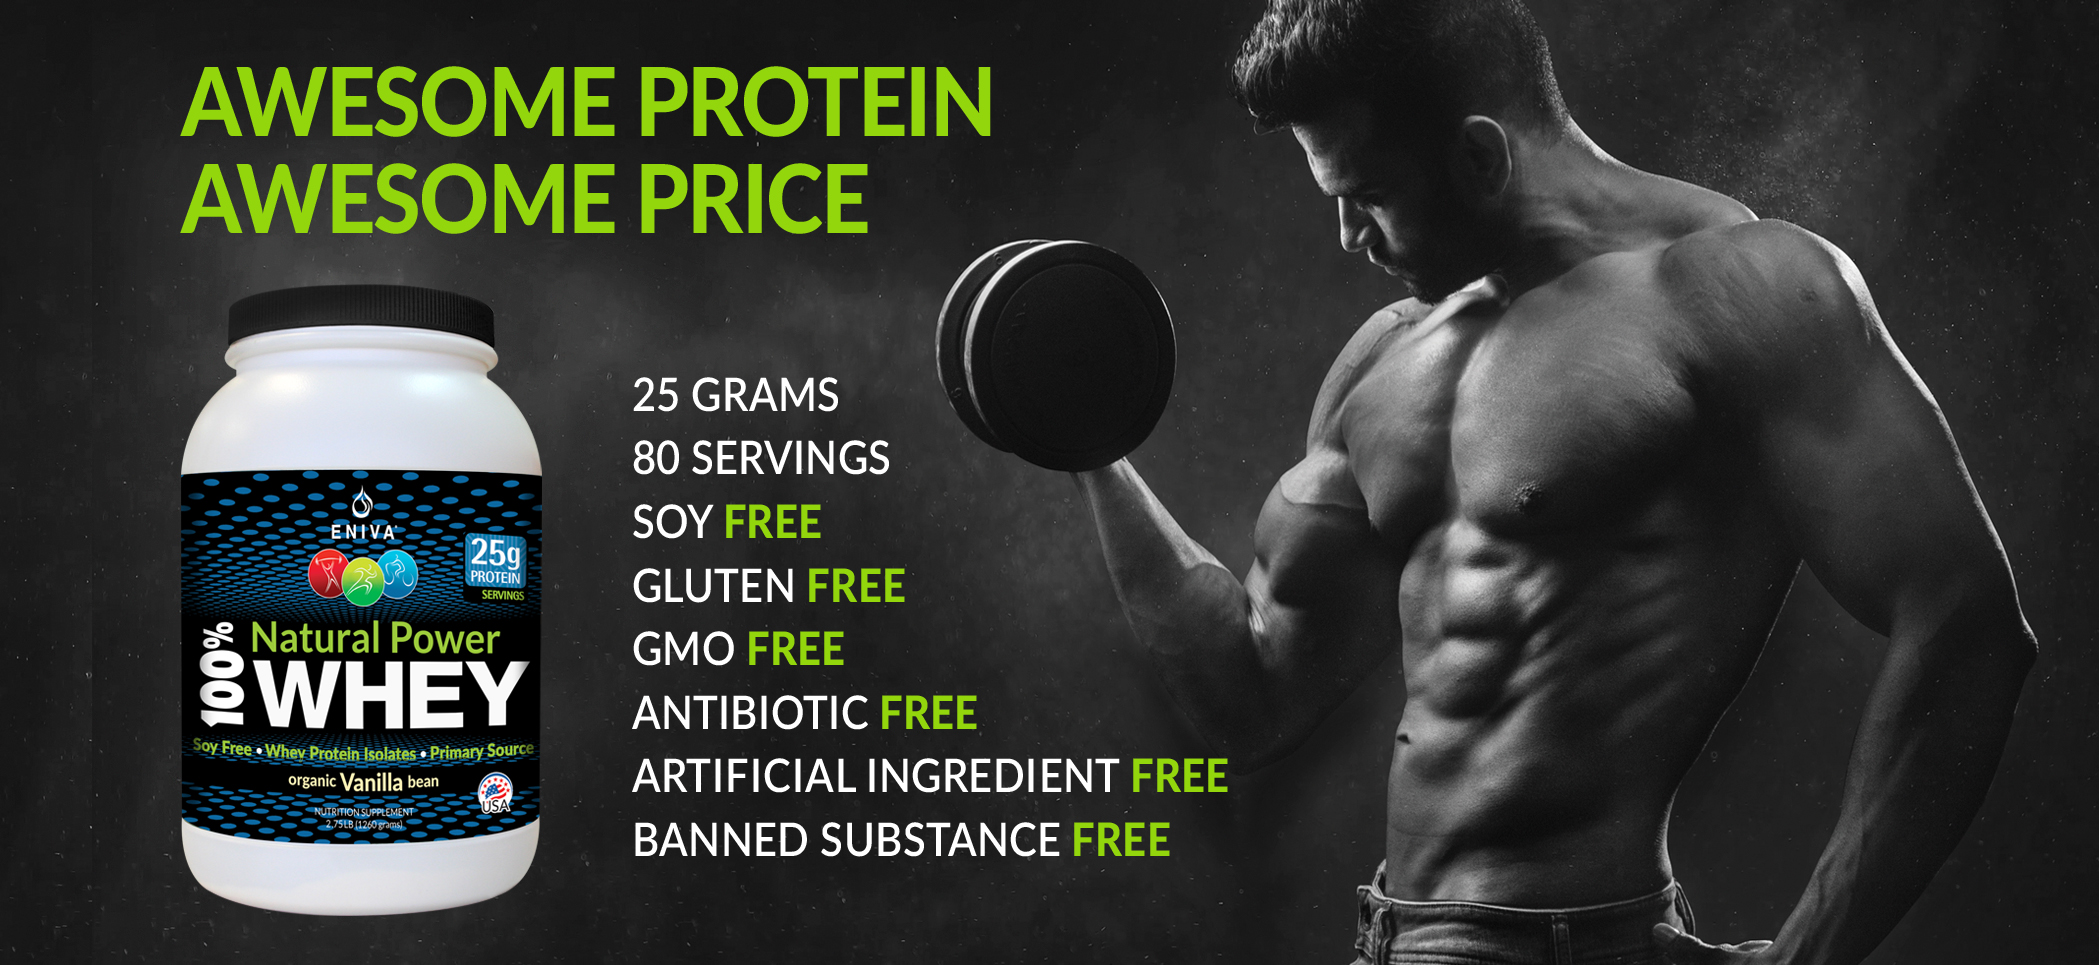 protein-sport-beauty-special.jpg